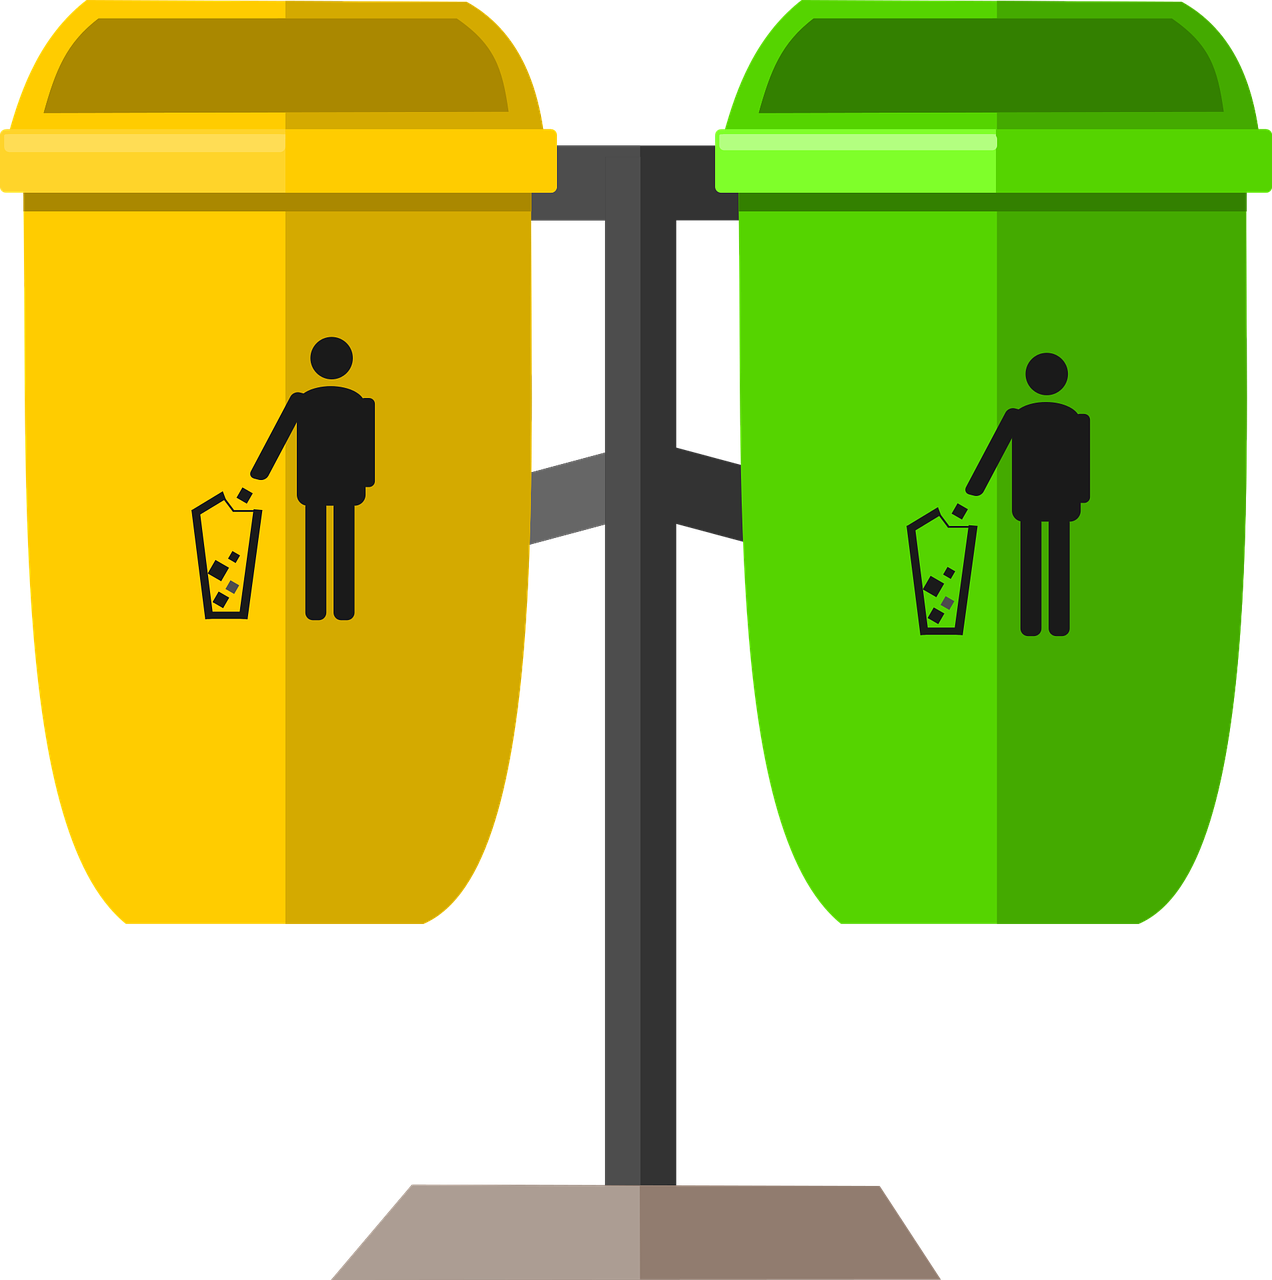 trash-can-1569513_1280.png